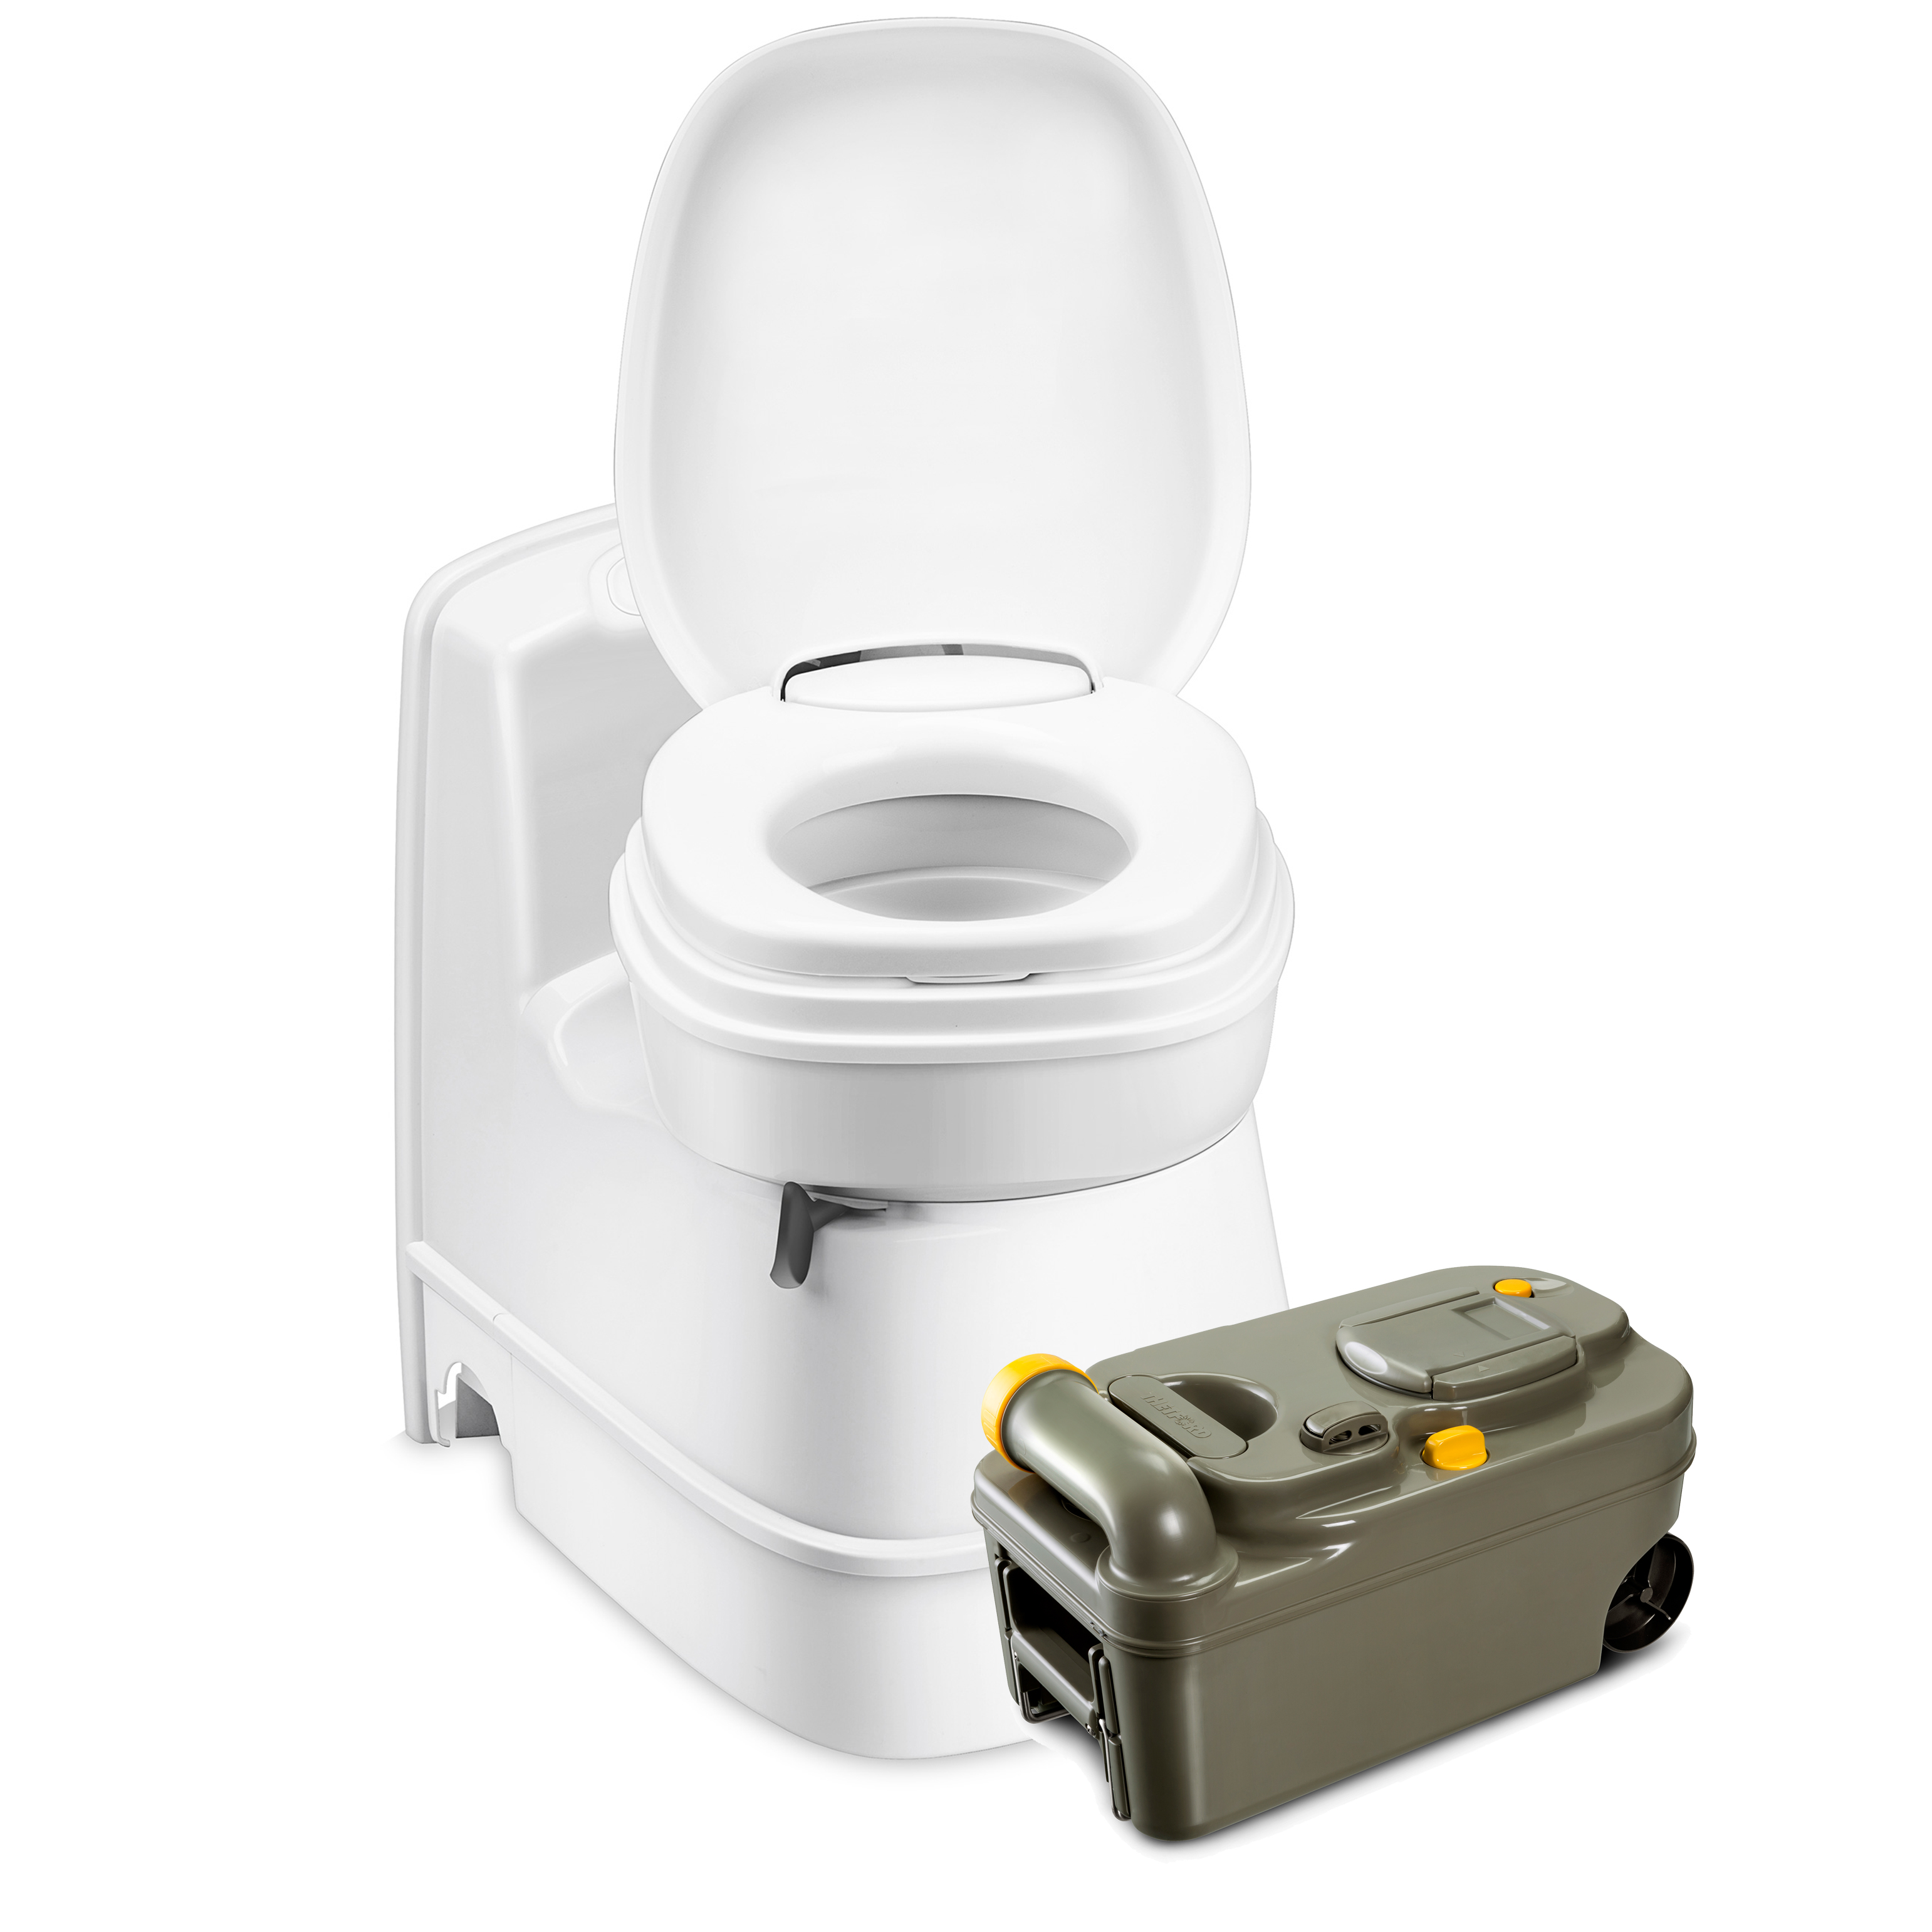 Cassette Toilets Thetford Long Lever R A V4 Microswitch Elite Baseboards C200 Cs No Longer Available Series